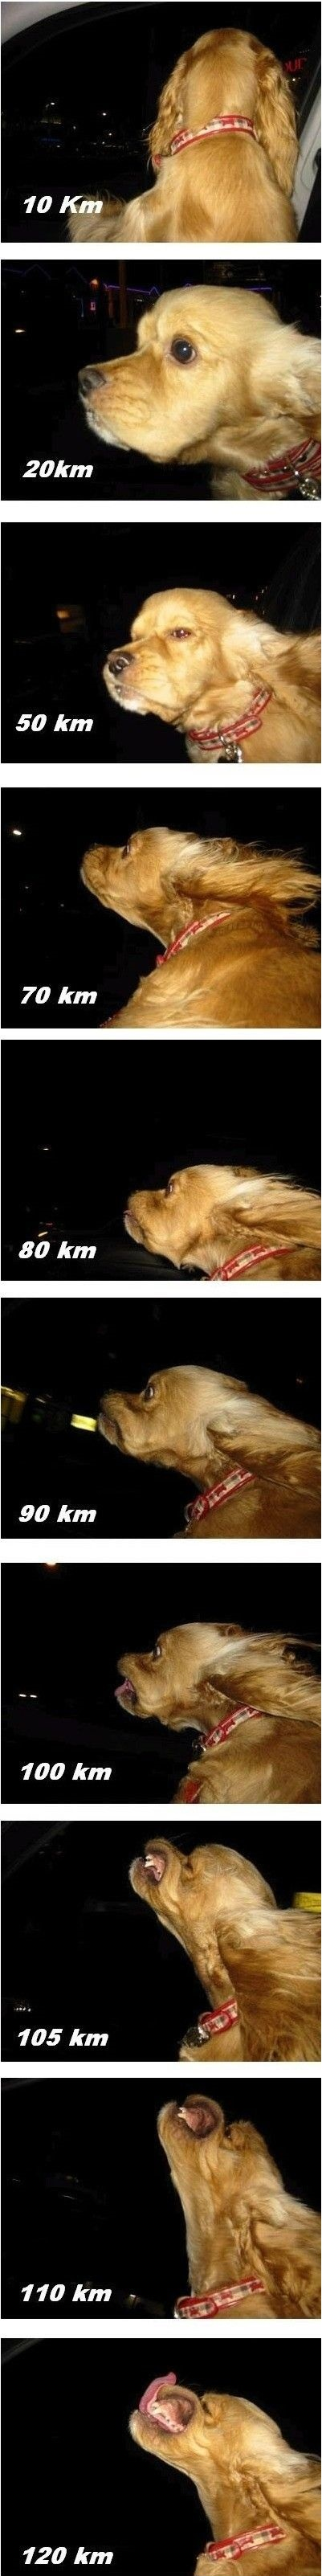 funny-pictures-wind-in-the-face-dog